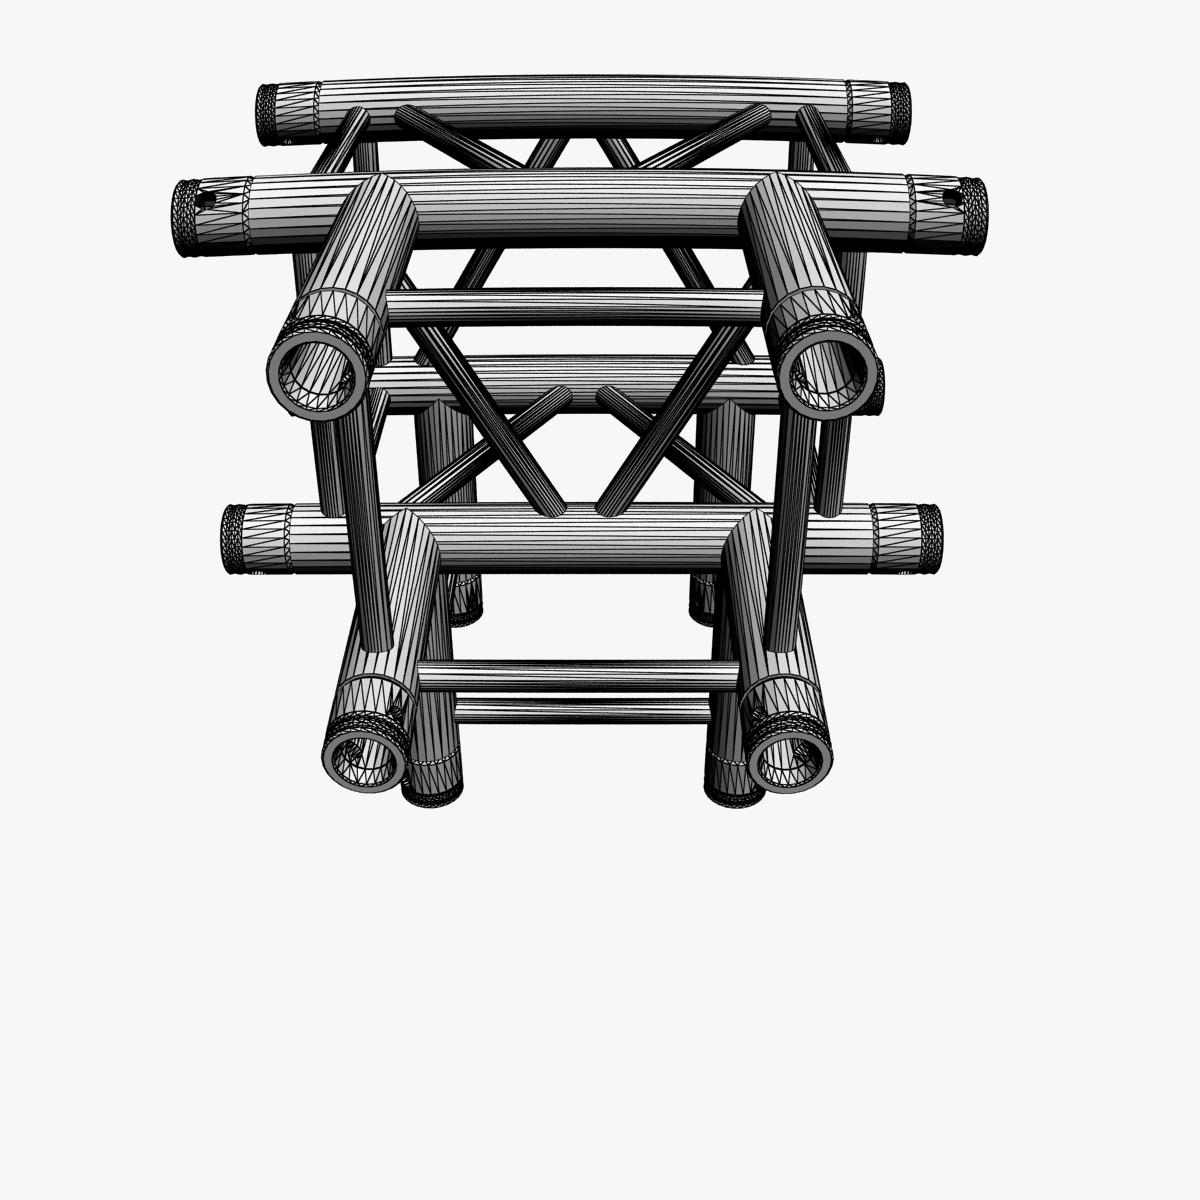 square truss standard (collection 24 modular) 3d model 3ds max dxf fbx c4d dae  texture obj 216347